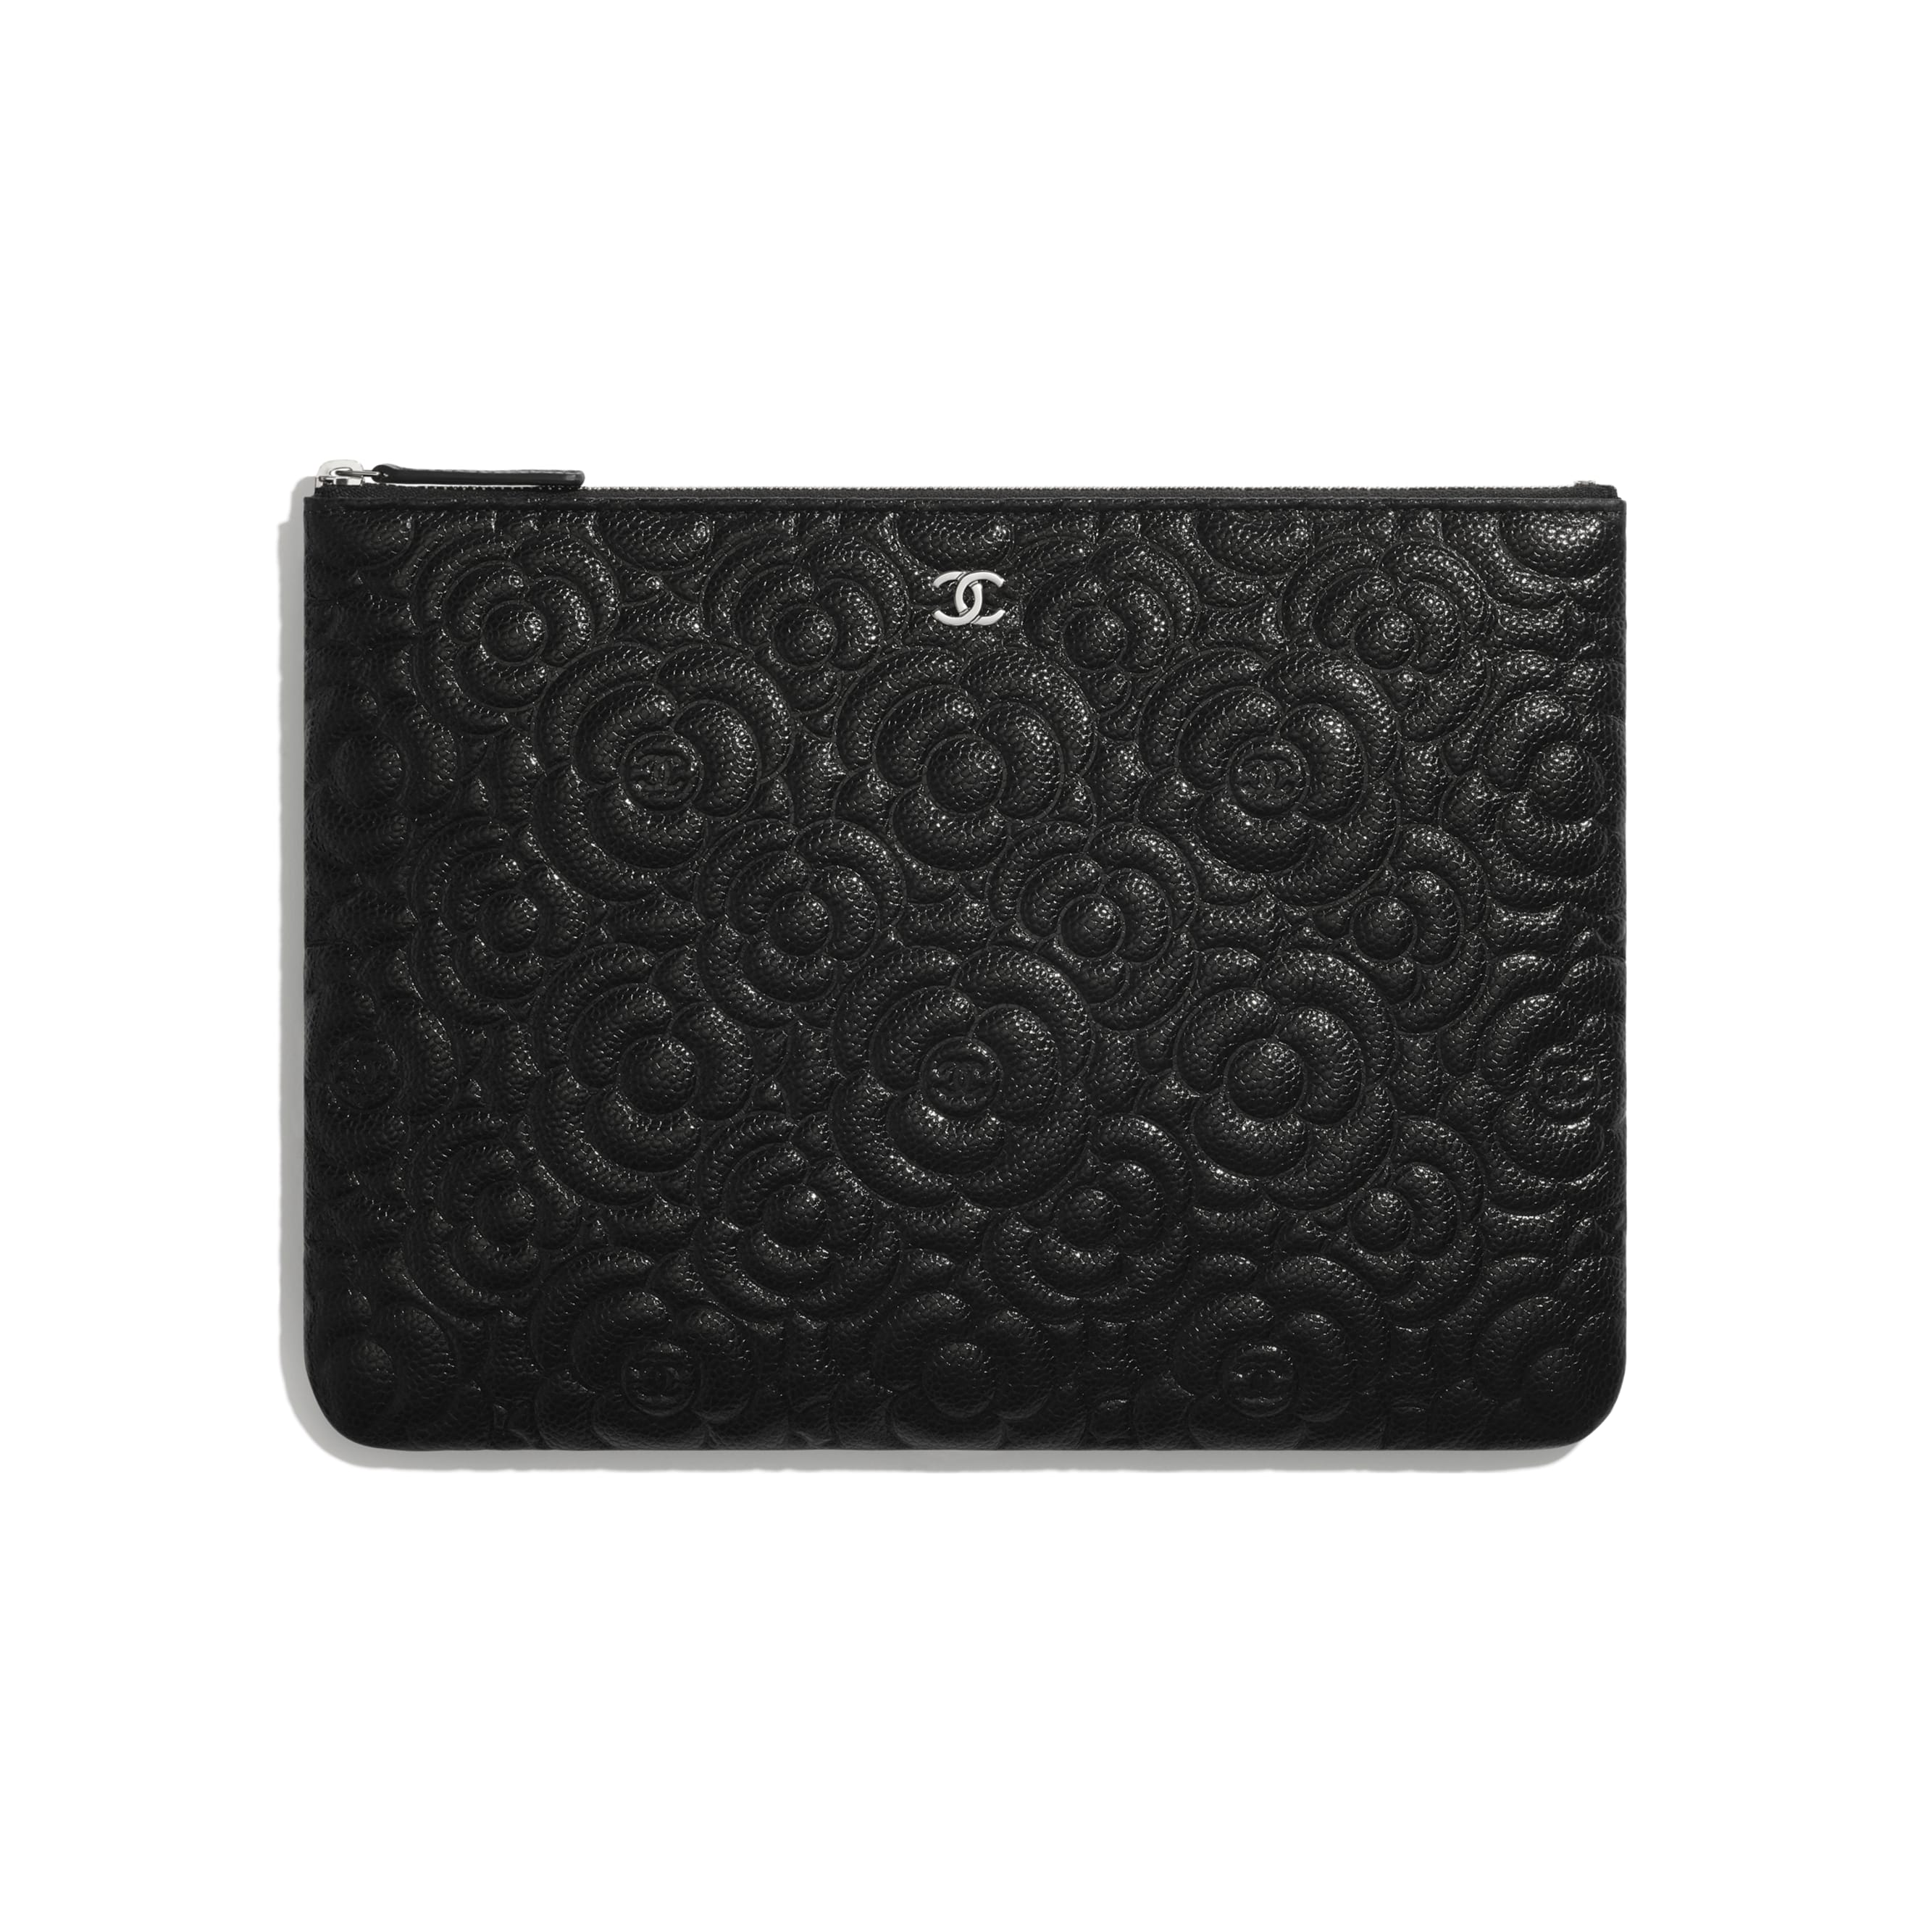 Pouch - Black - Grained Calfskin & Silver Metal - CHANEL - Default view - see standard sized version